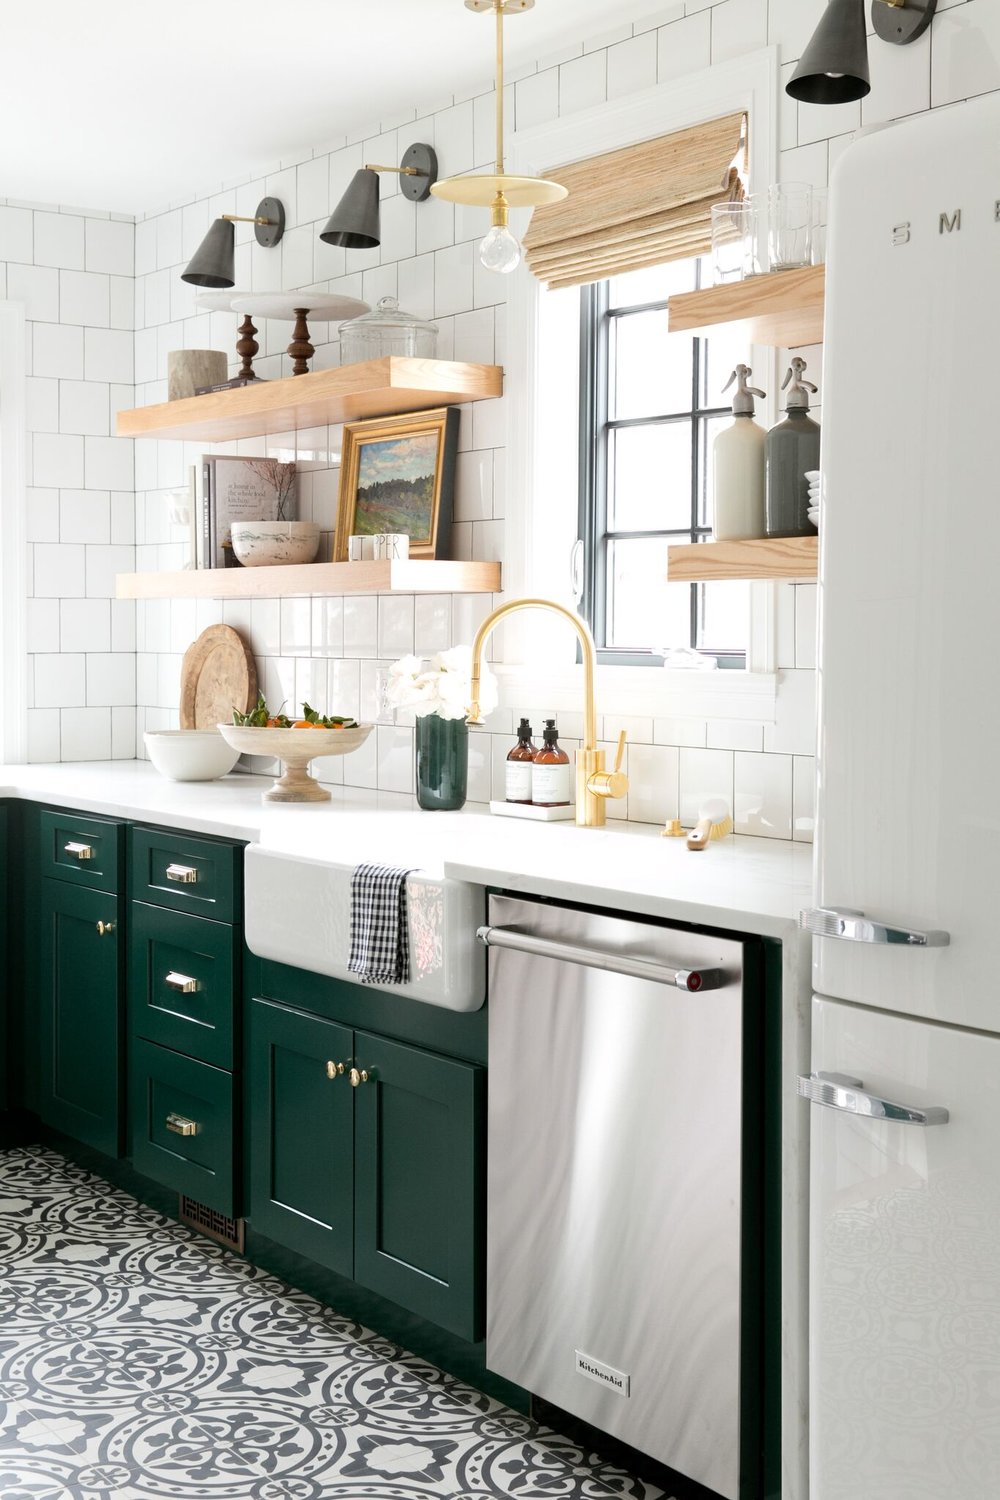 Our Paint Guide to Cabinet Colors